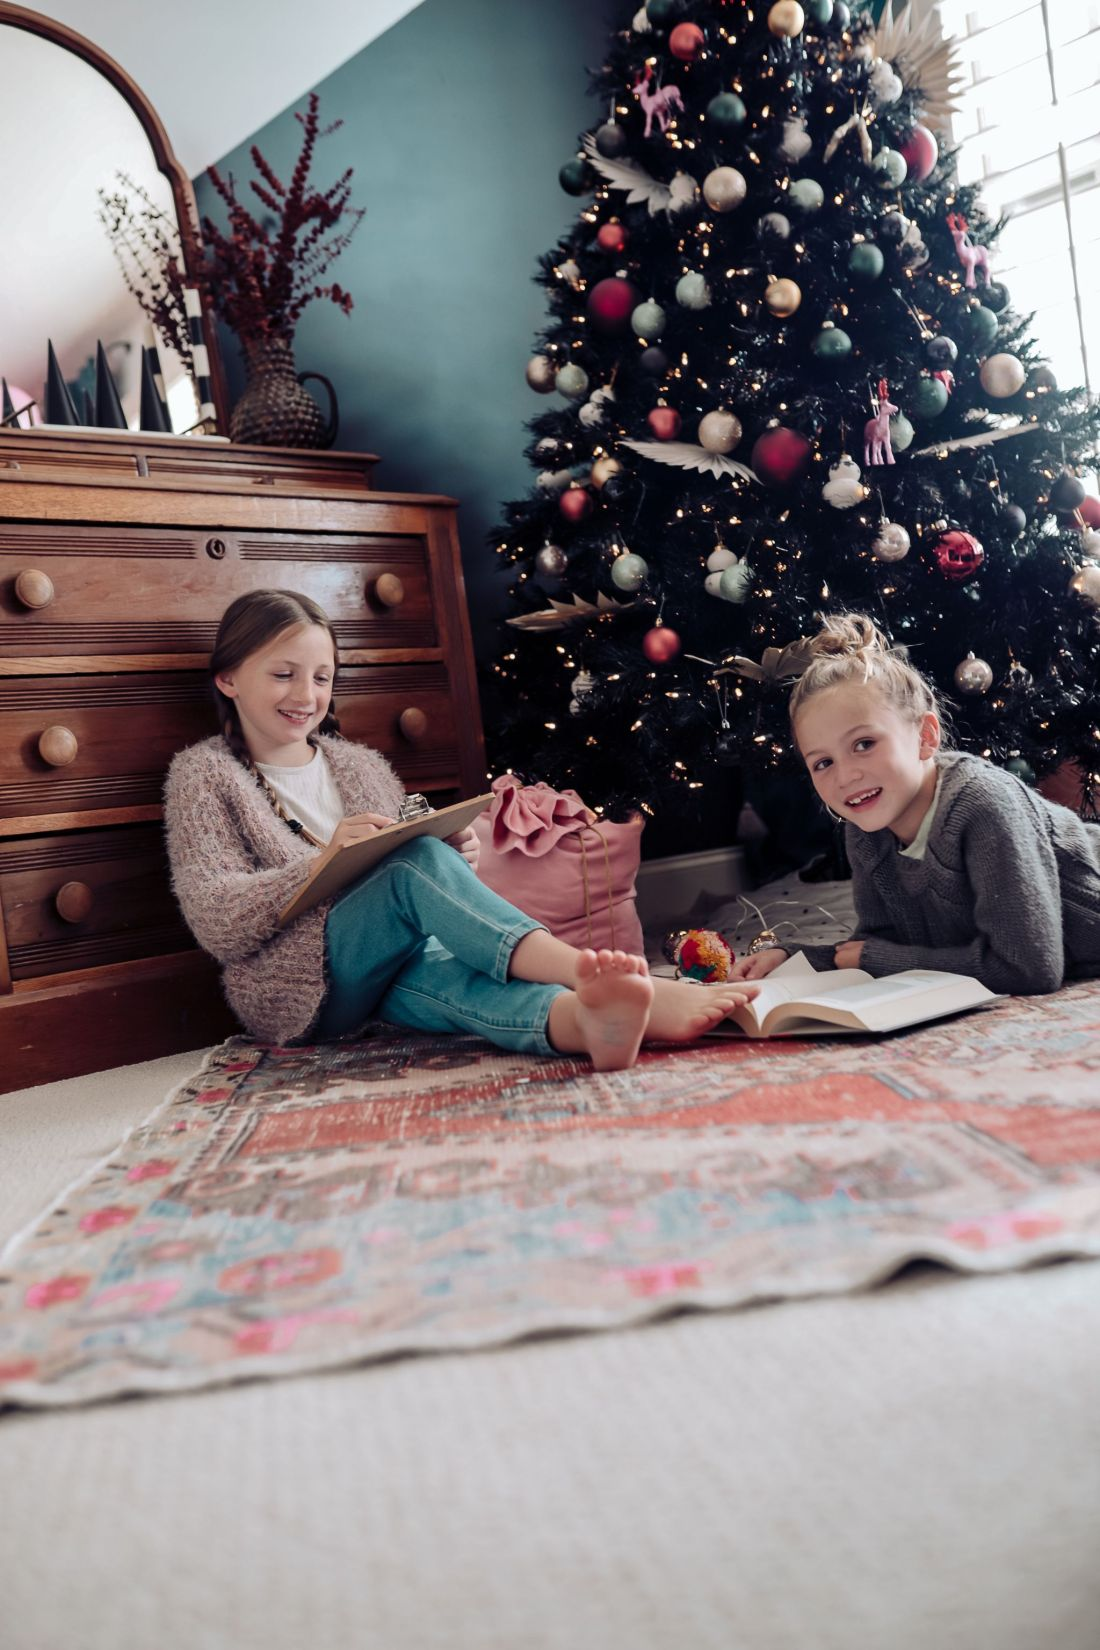 Carpet and Rug Institute by popular Nashville life and style blog, Modern Day Moguls: image of two girls in on a Carpet and Rug Institute rug in a home office decorated with a black Christmas tree and wooden dresser with a mirror.